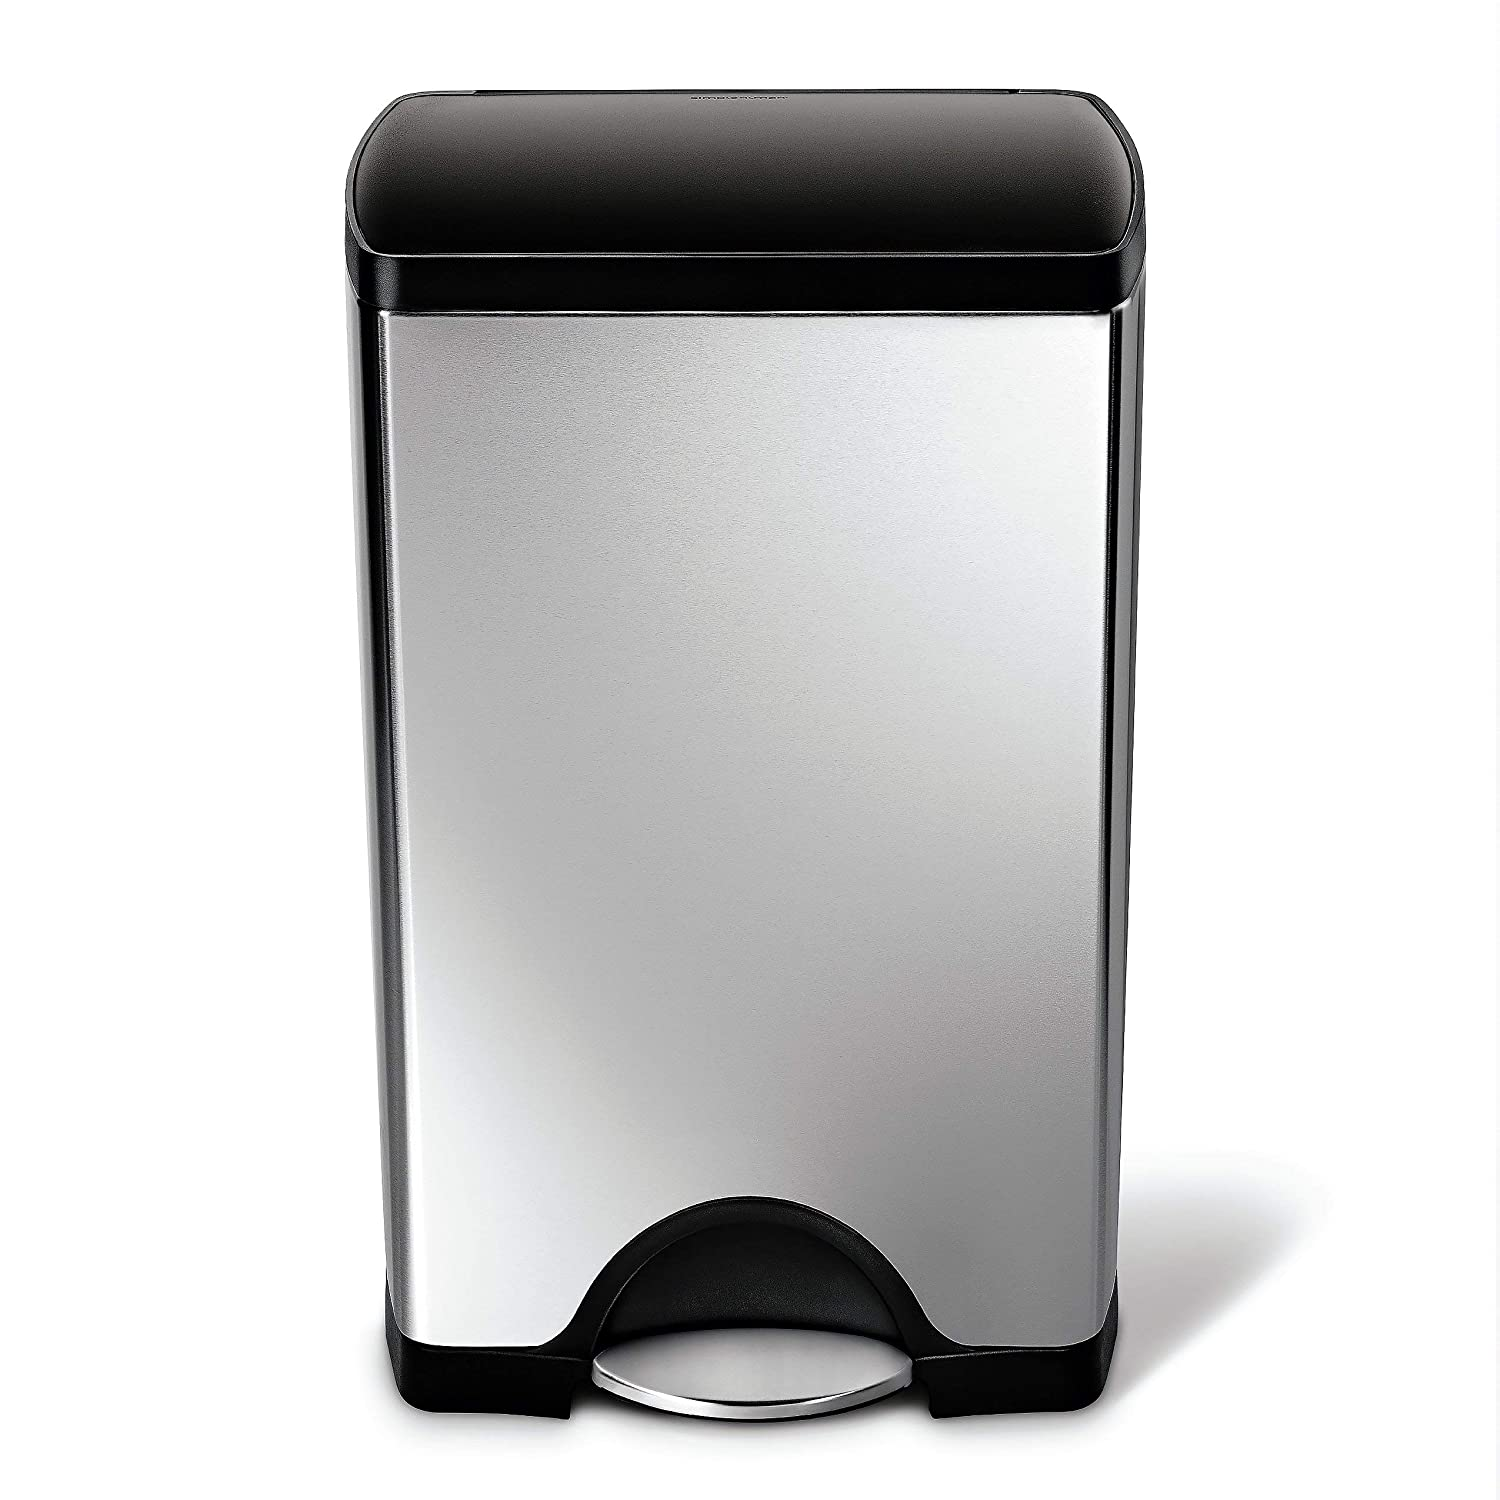 simplehuman Cw1950 Kitchen Trash Can 10 Gallon Brushed Stainless Steel w/Black Plastic lid